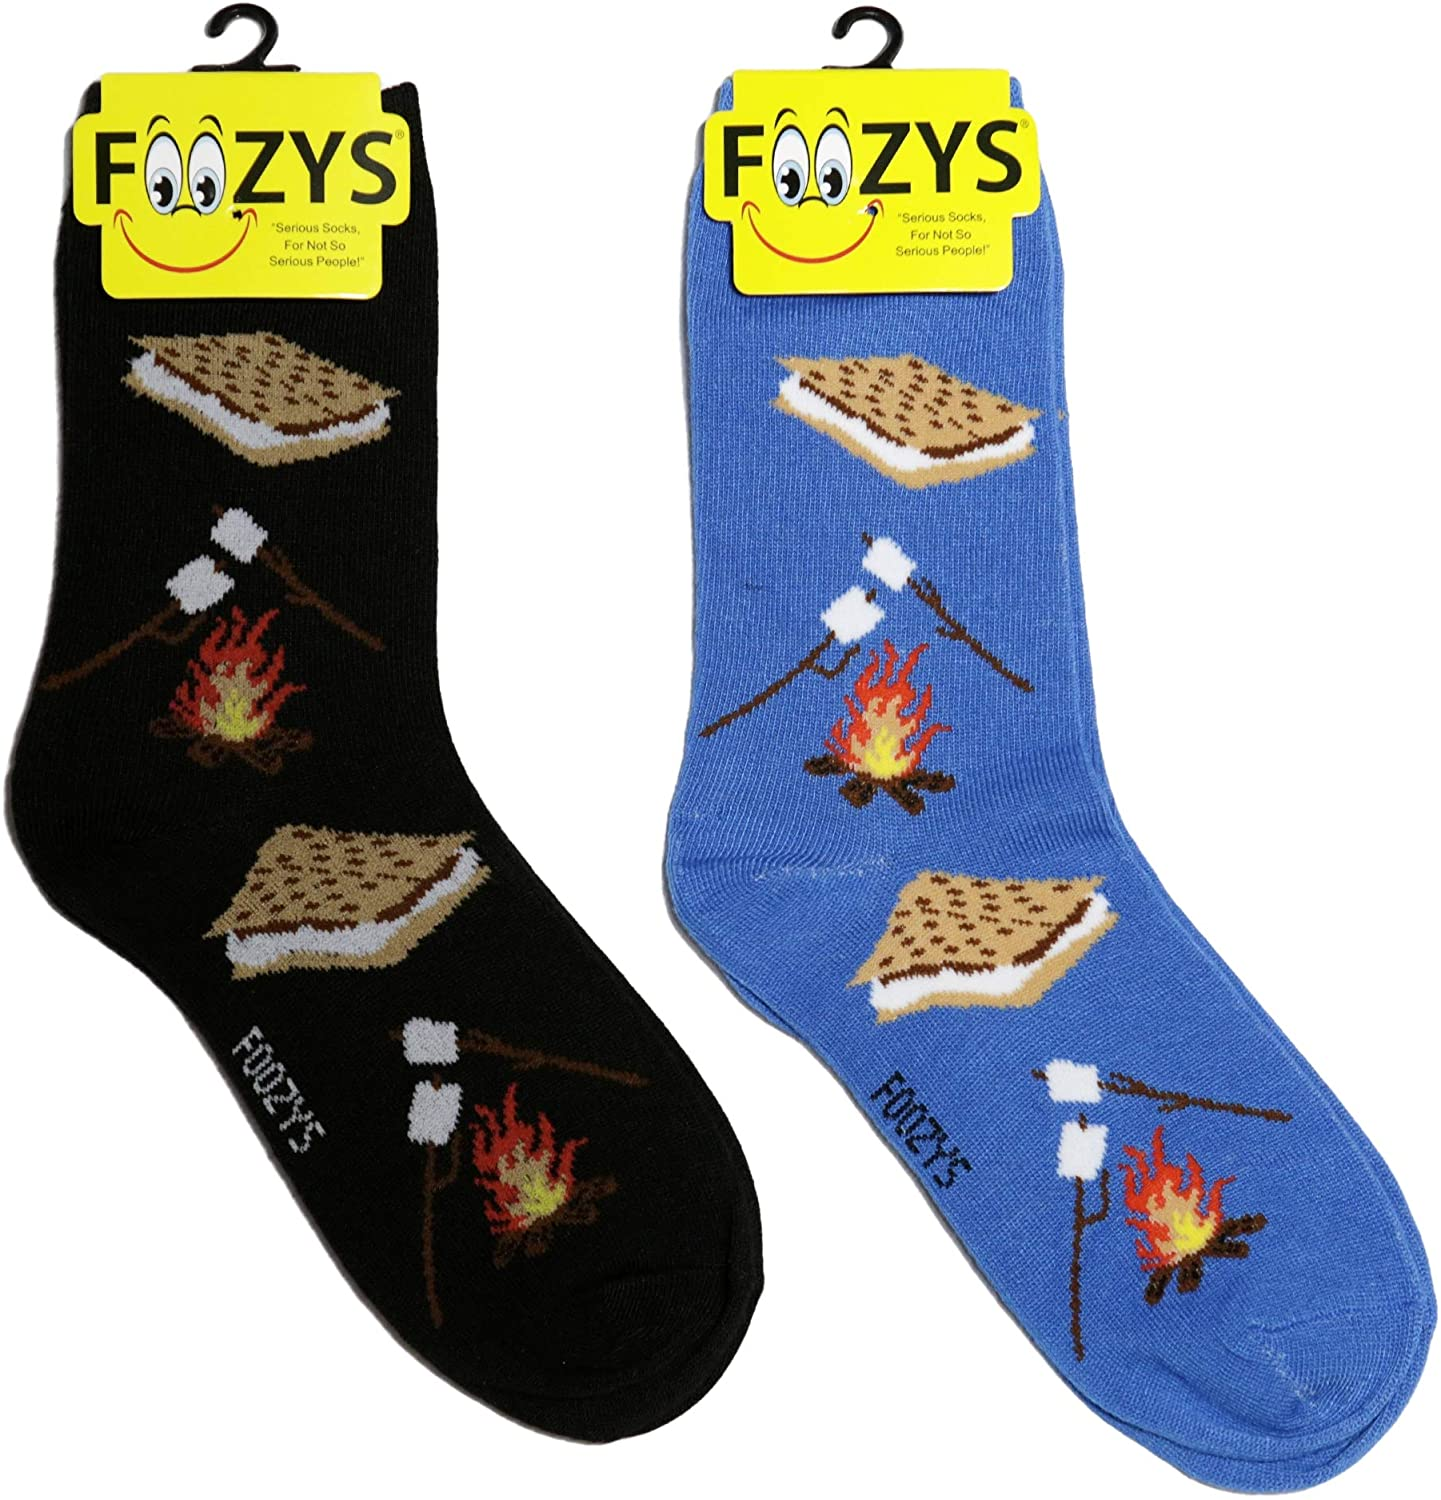 Foozys Women's Crew Socks | Cute Sweet Treats Themed Novelty Socks | 2 Pair